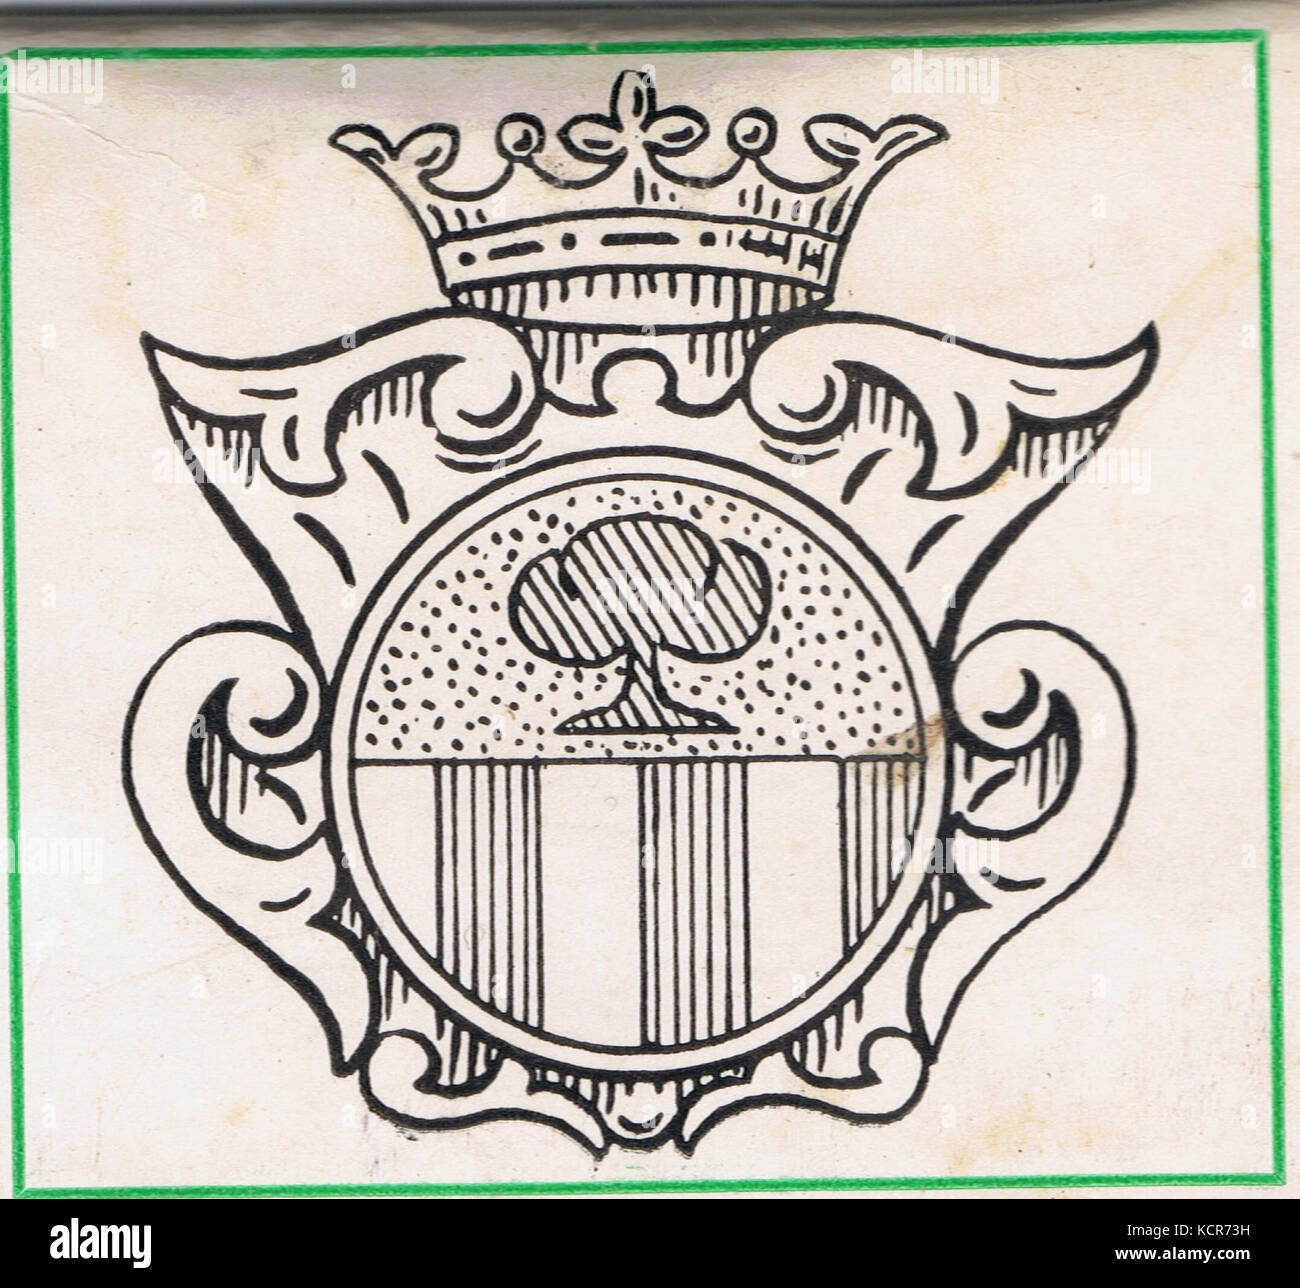 De Salis shield motif used as the cover of a flat matchstick pack. c. 1972 adaption of c. 1734 design - Stock Image